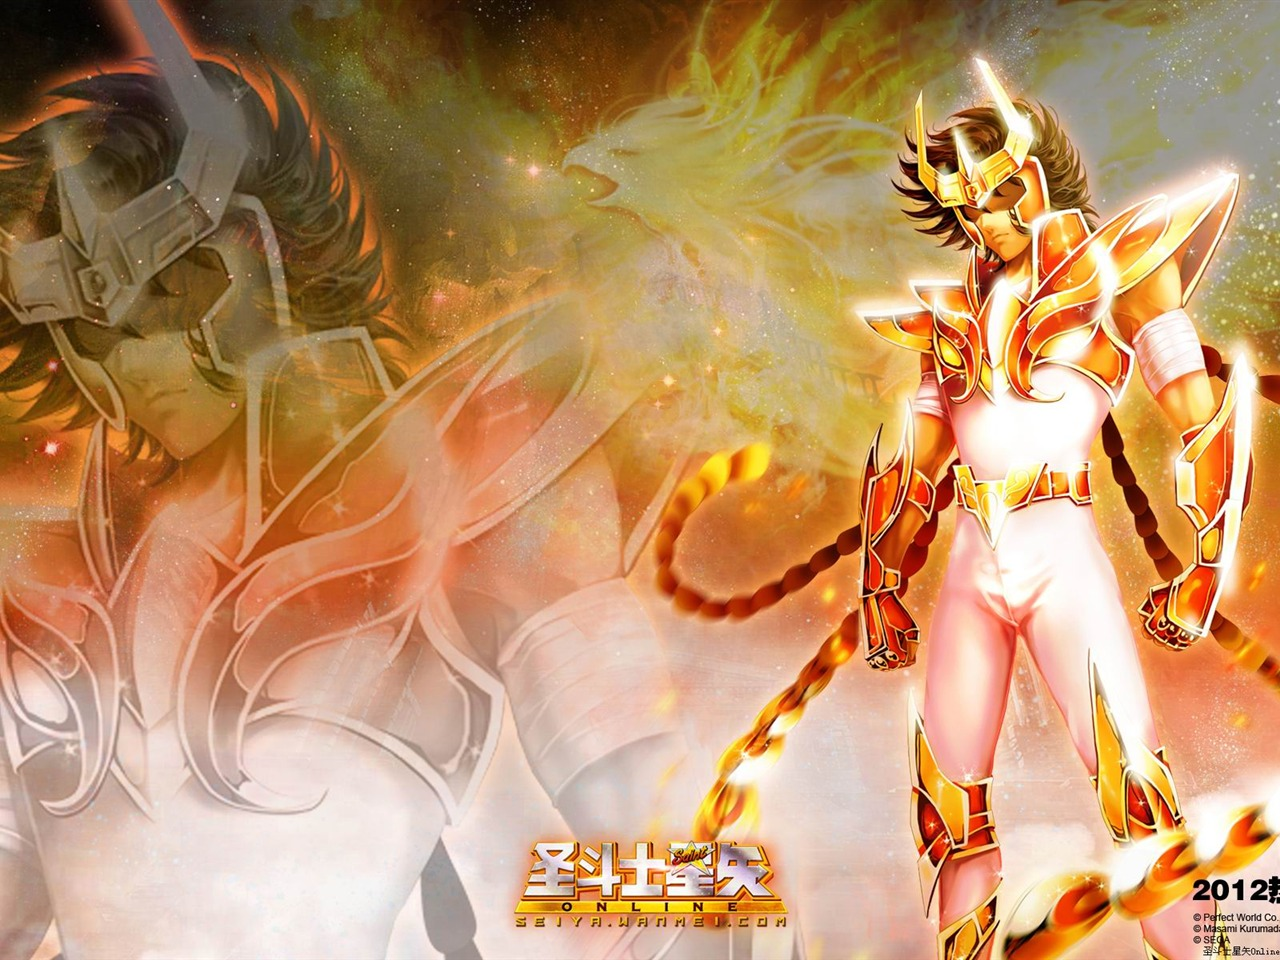 Wallpaper Dragon Ball 3d Hd Saint Seiya Omega Anime Hd Fond D 233 Cran Aper 231 U